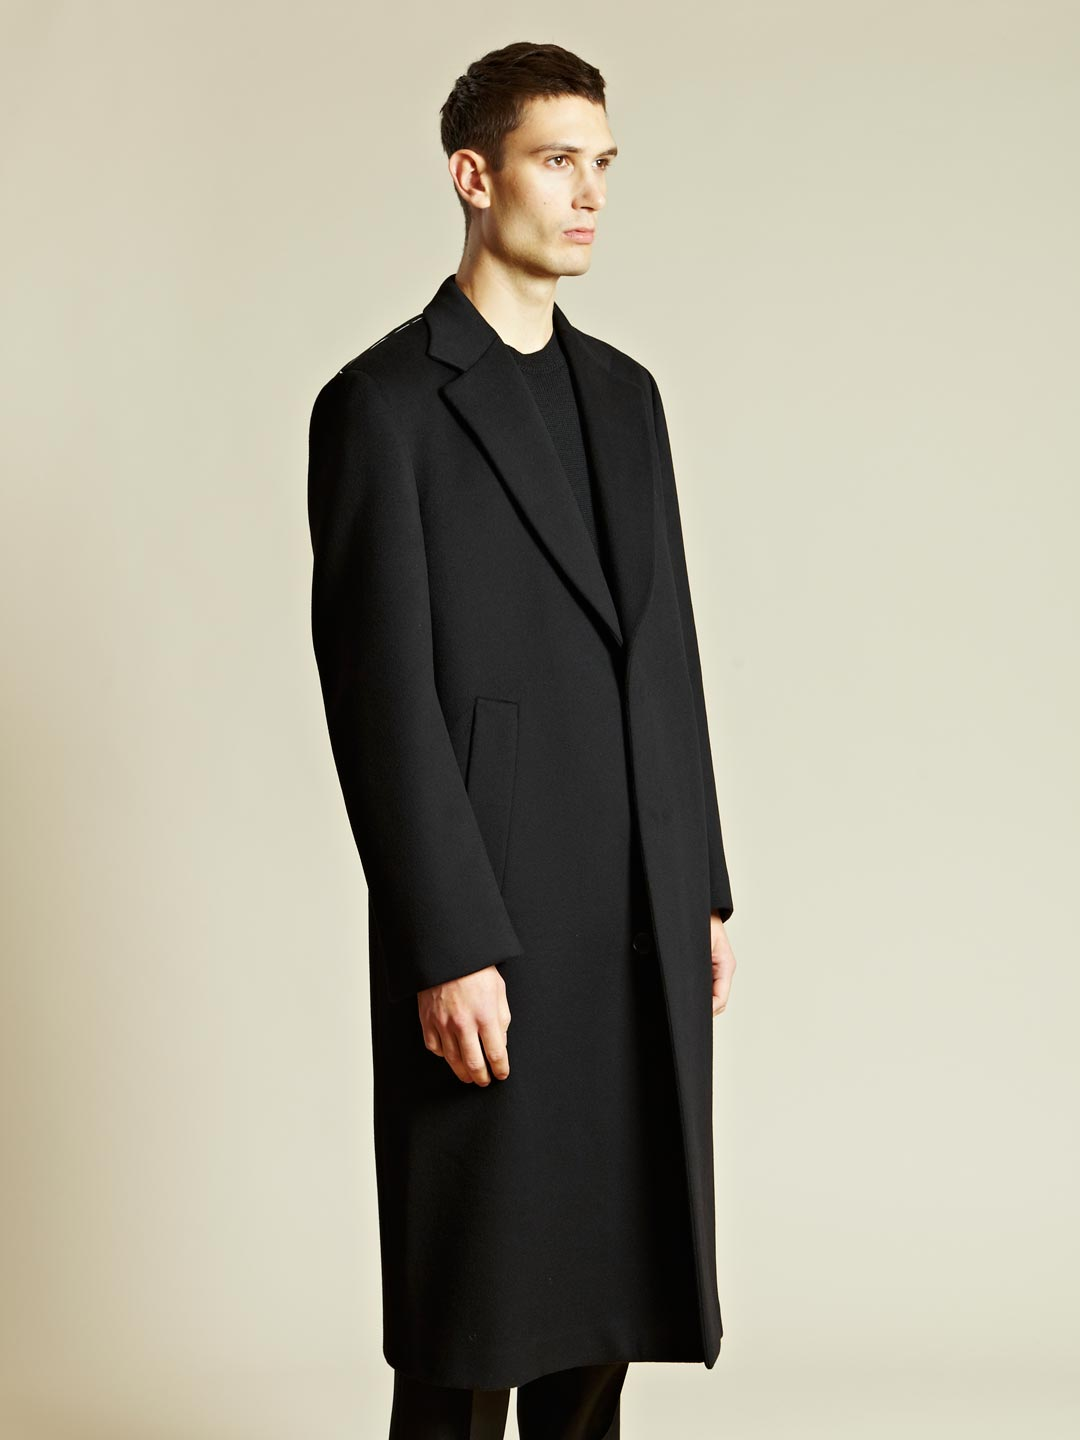 jil sander volta coat in black for men lyst. Black Bedroom Furniture Sets. Home Design Ideas